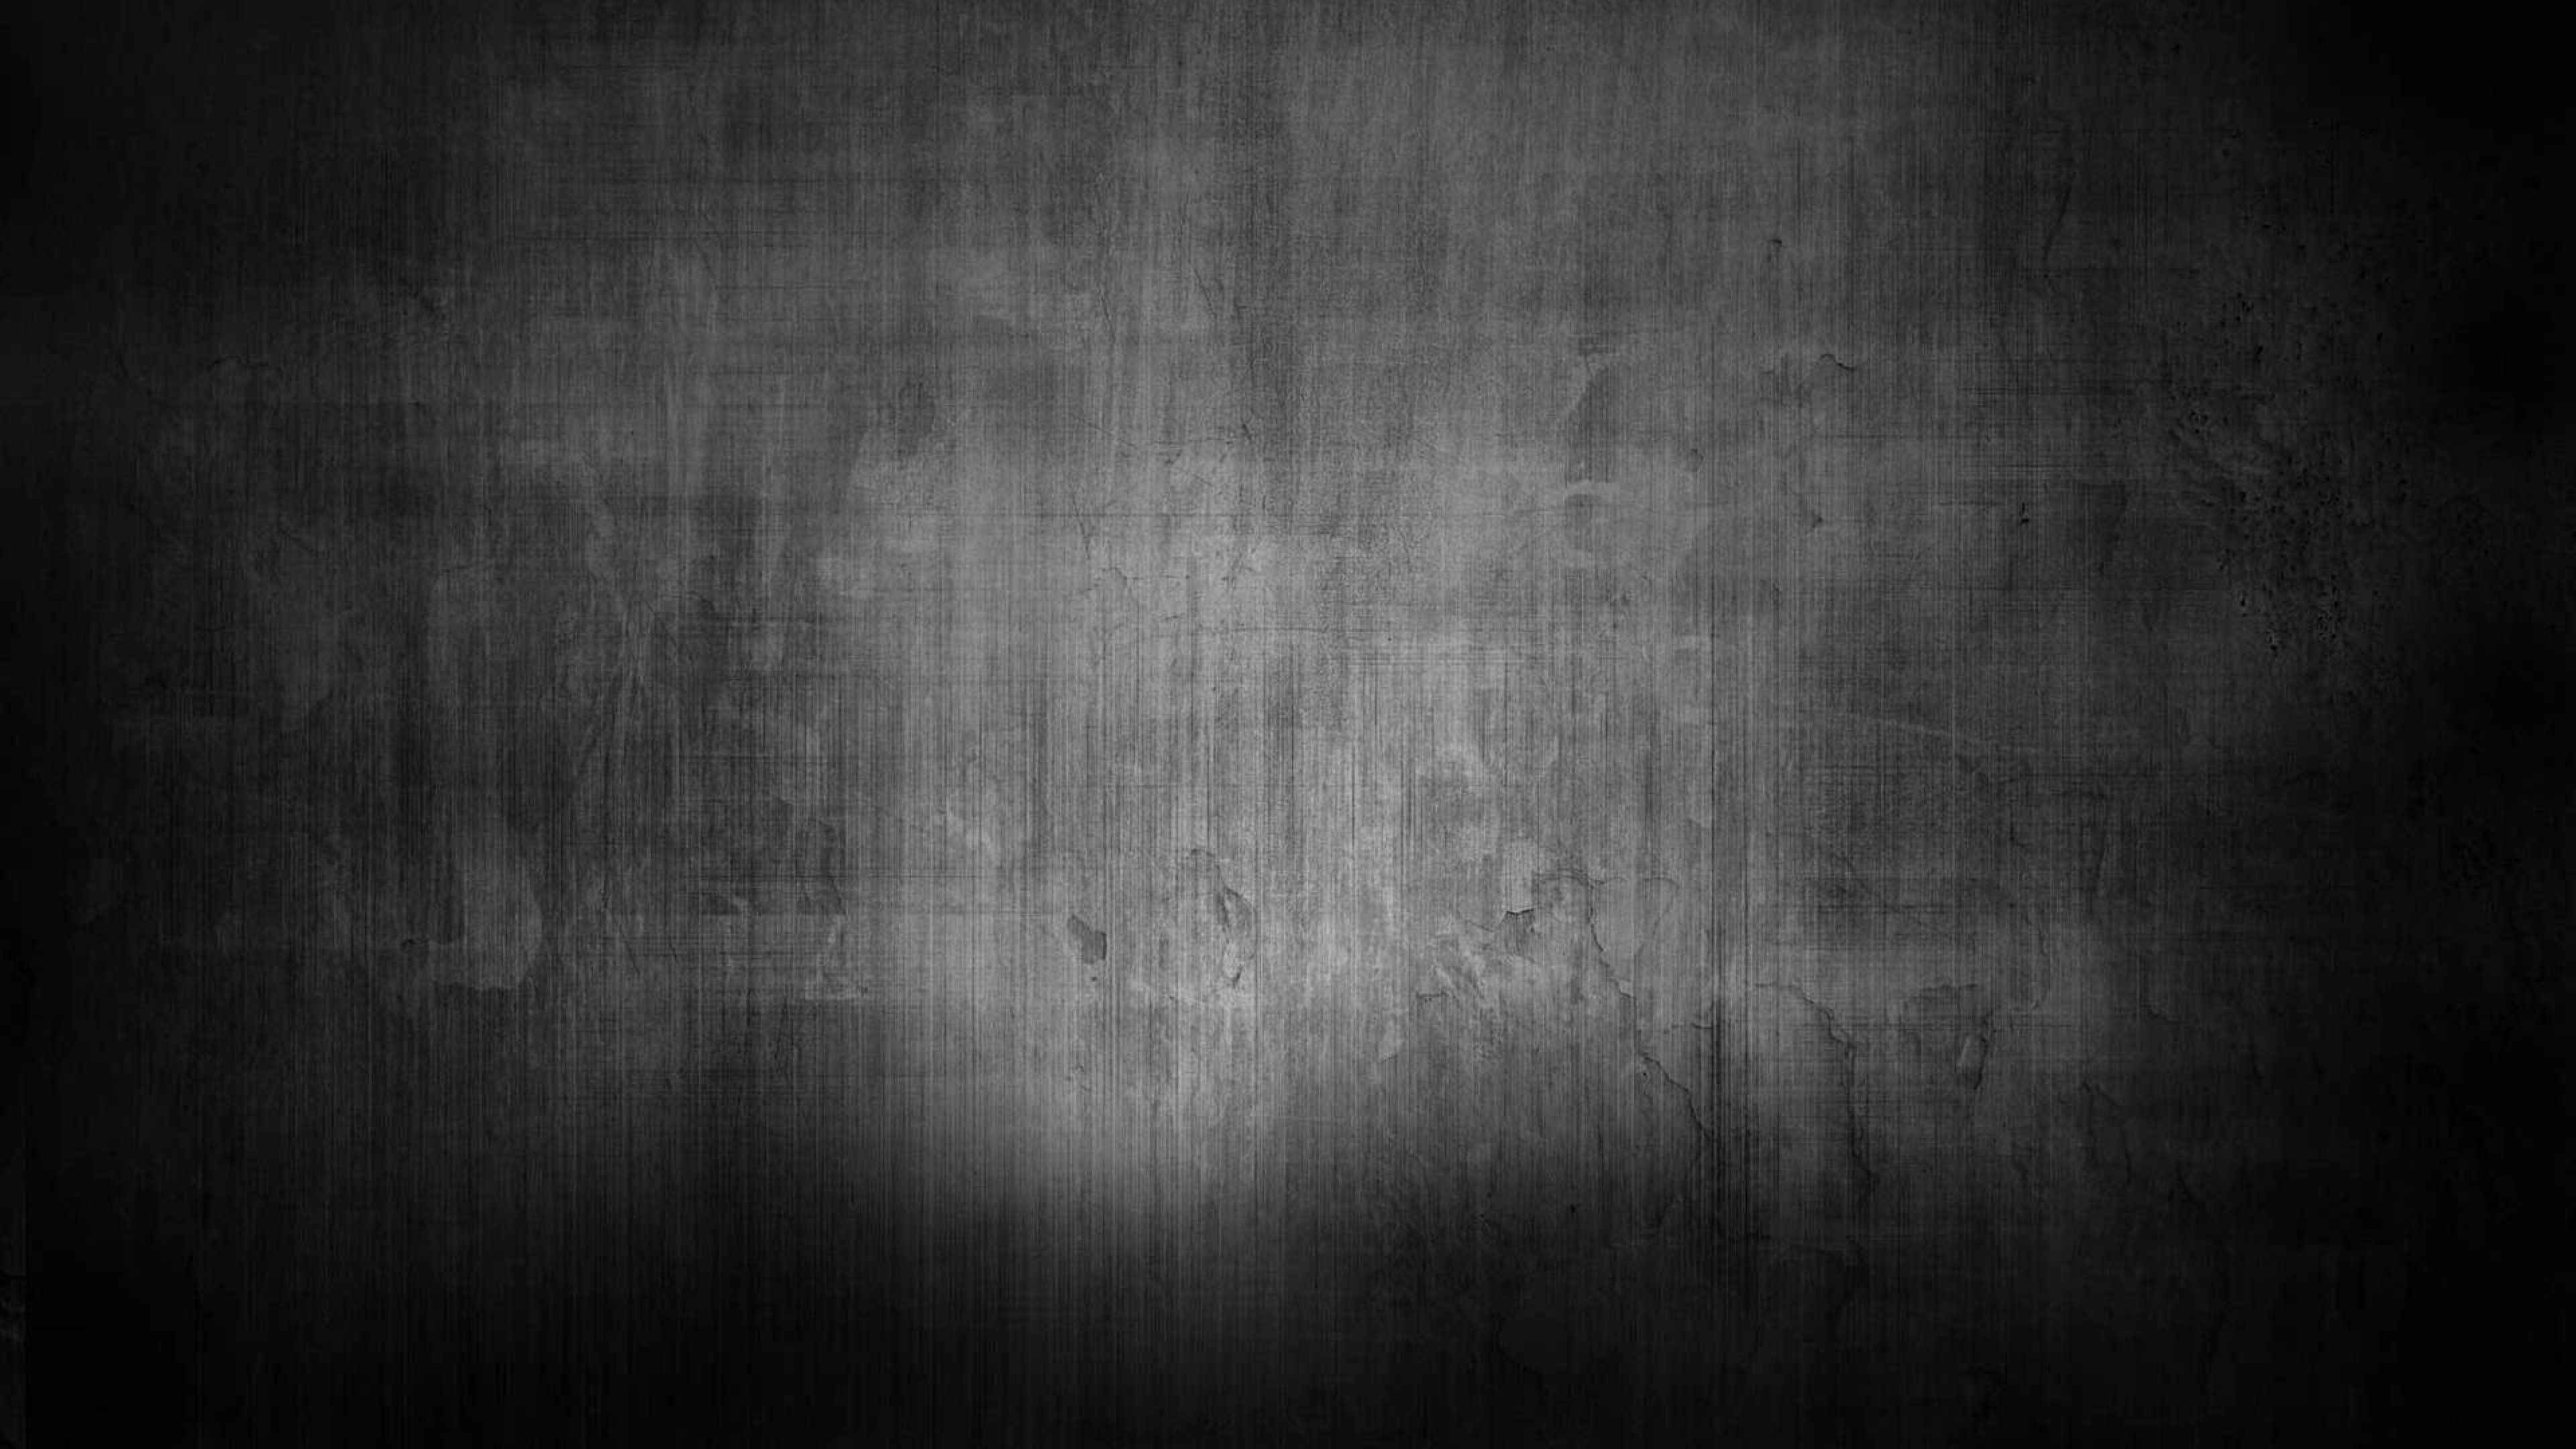 Free Download Hd Background White Spot Black Texture